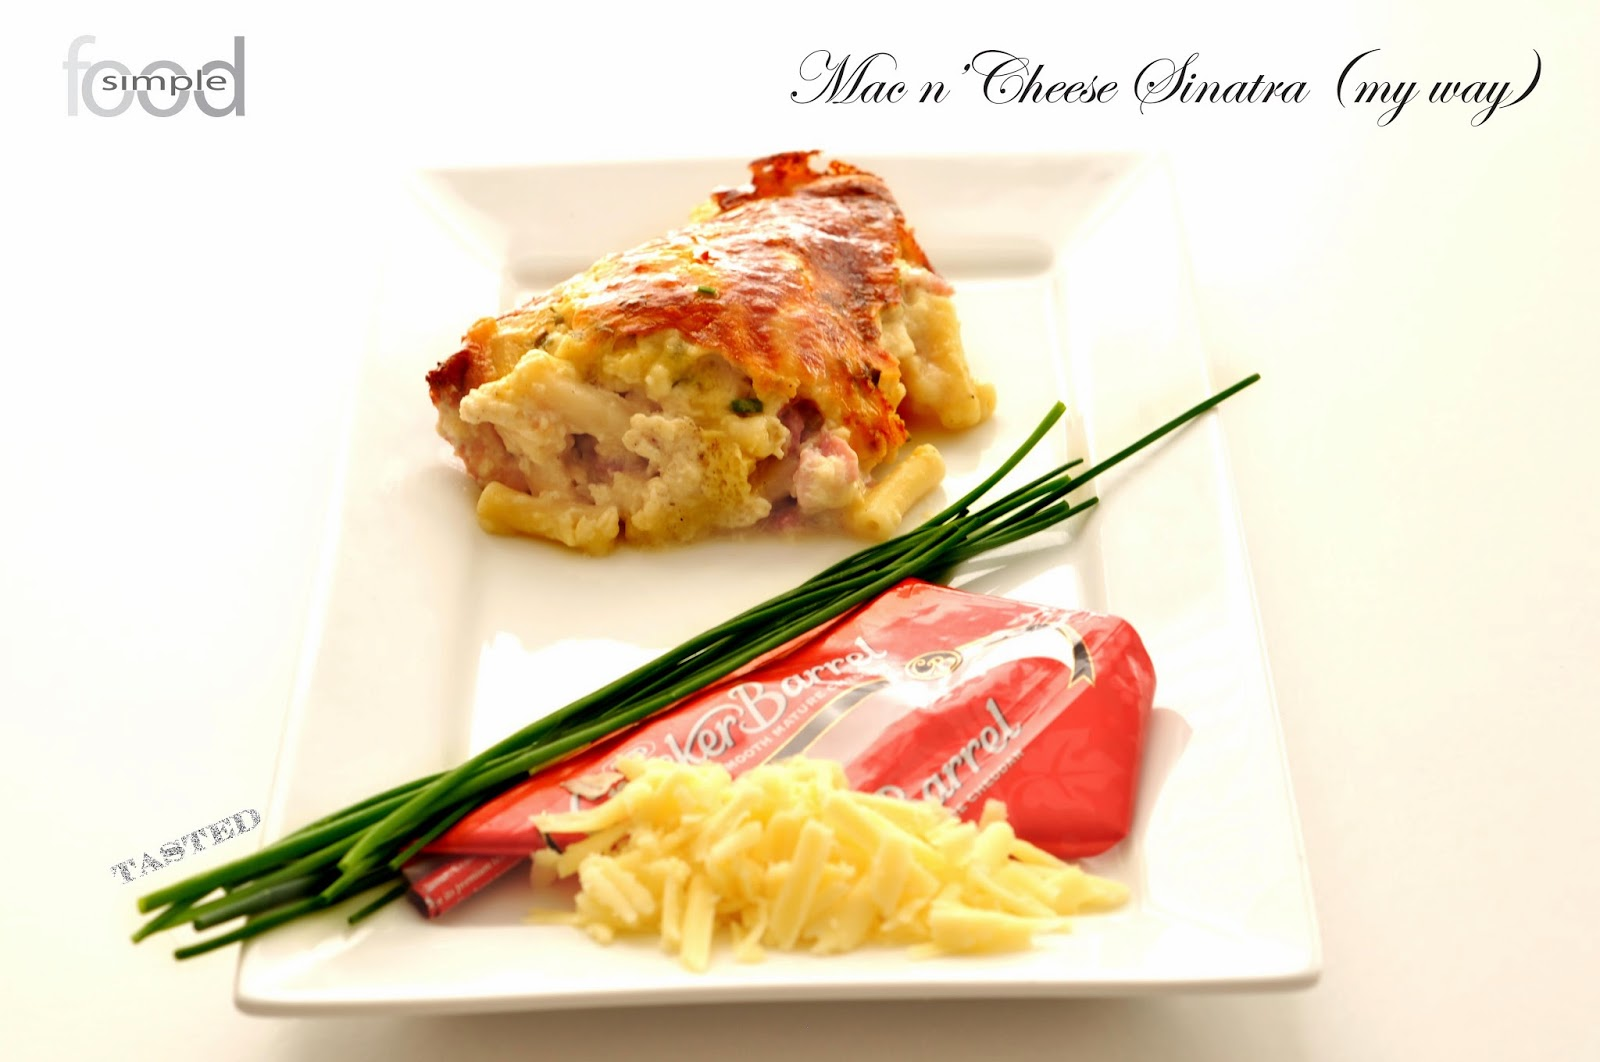 Cracker Barrel Macaroni Cheese with Bacon and Chives ~ Simple Food